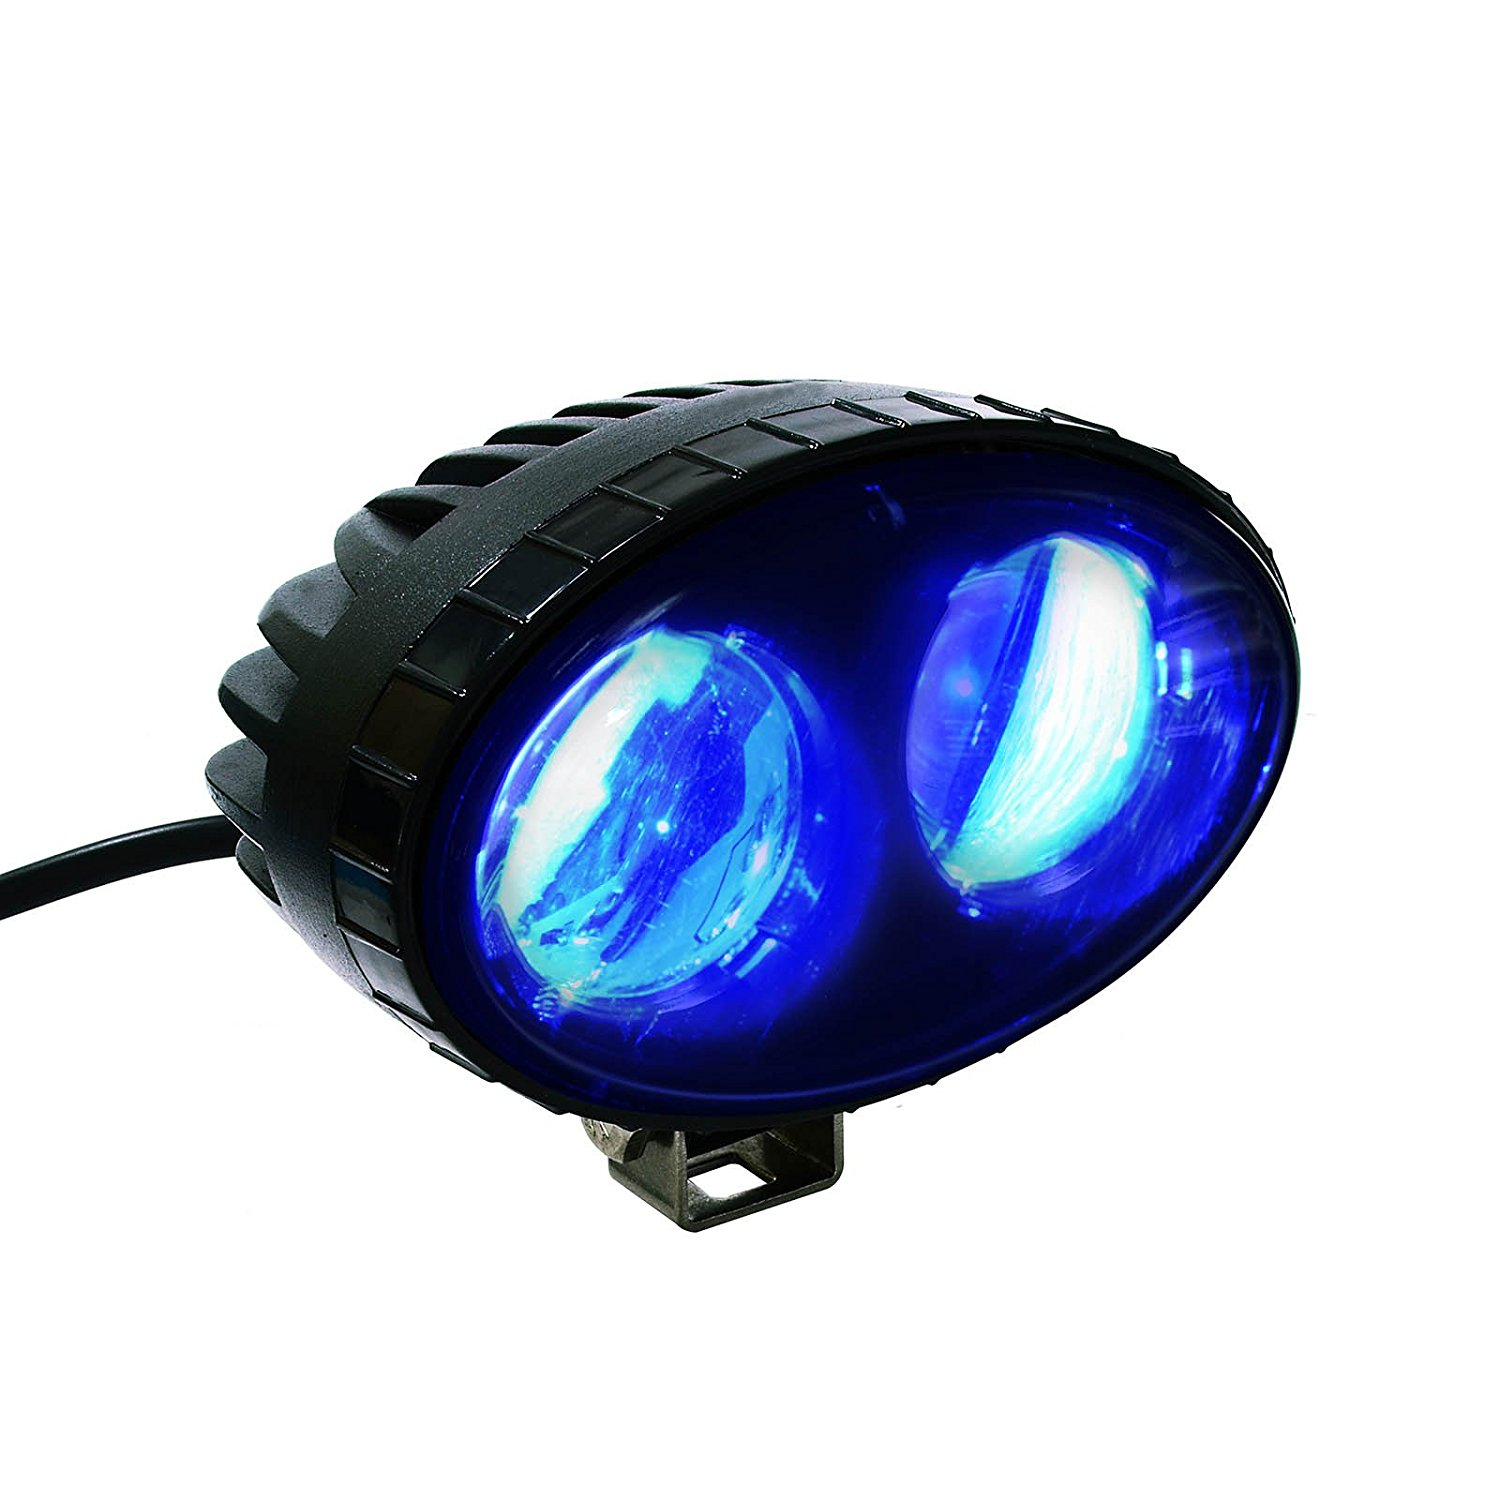 1500x1500 Aomax 8w Cree Blue Led Forklift Safety Light Spot